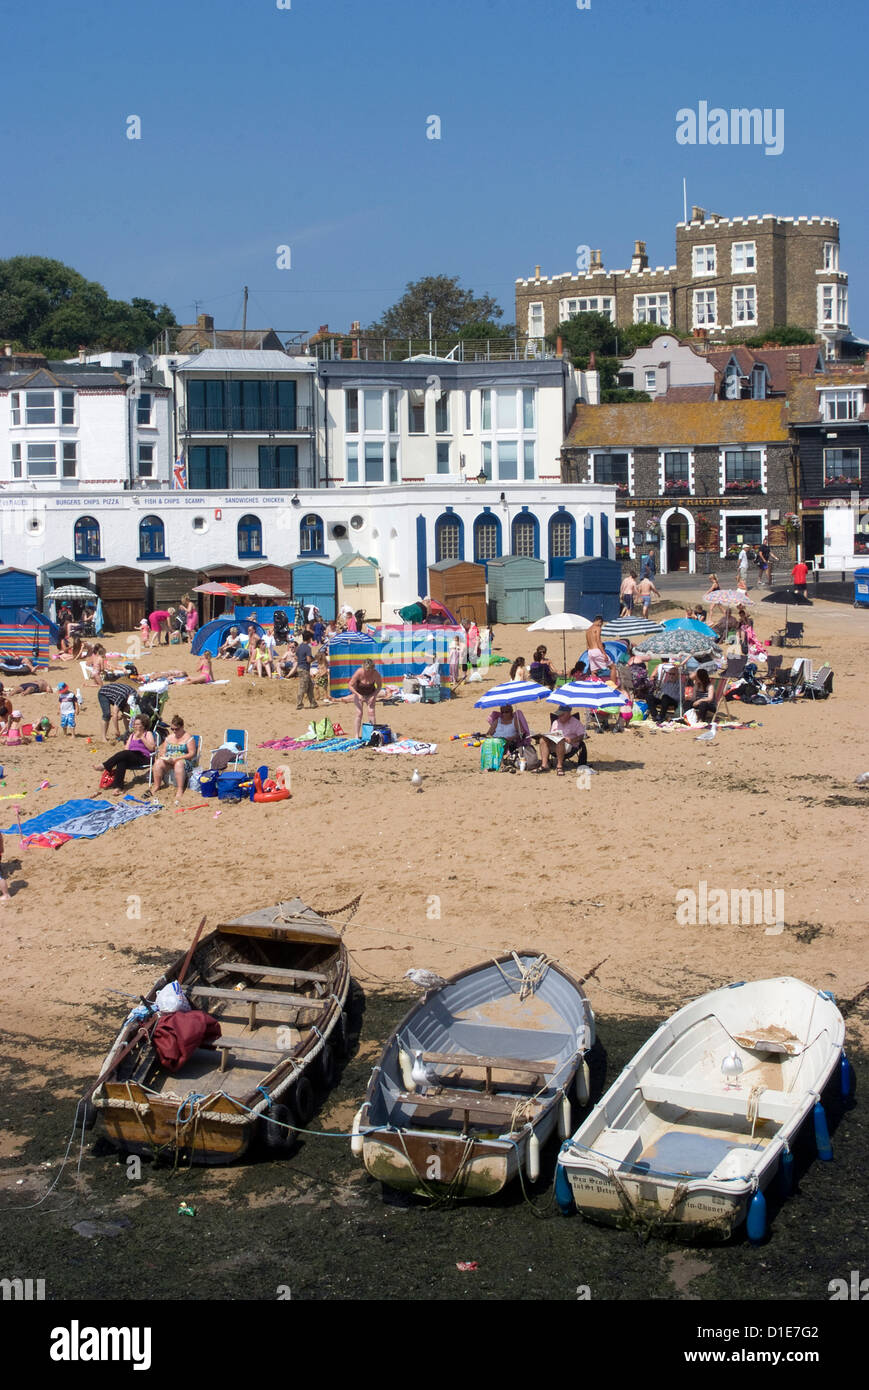 Beach with Bleak House in the background, Viking Bay, Broadstairs, Kent, England, United Kingdom, Europe - Stock Image